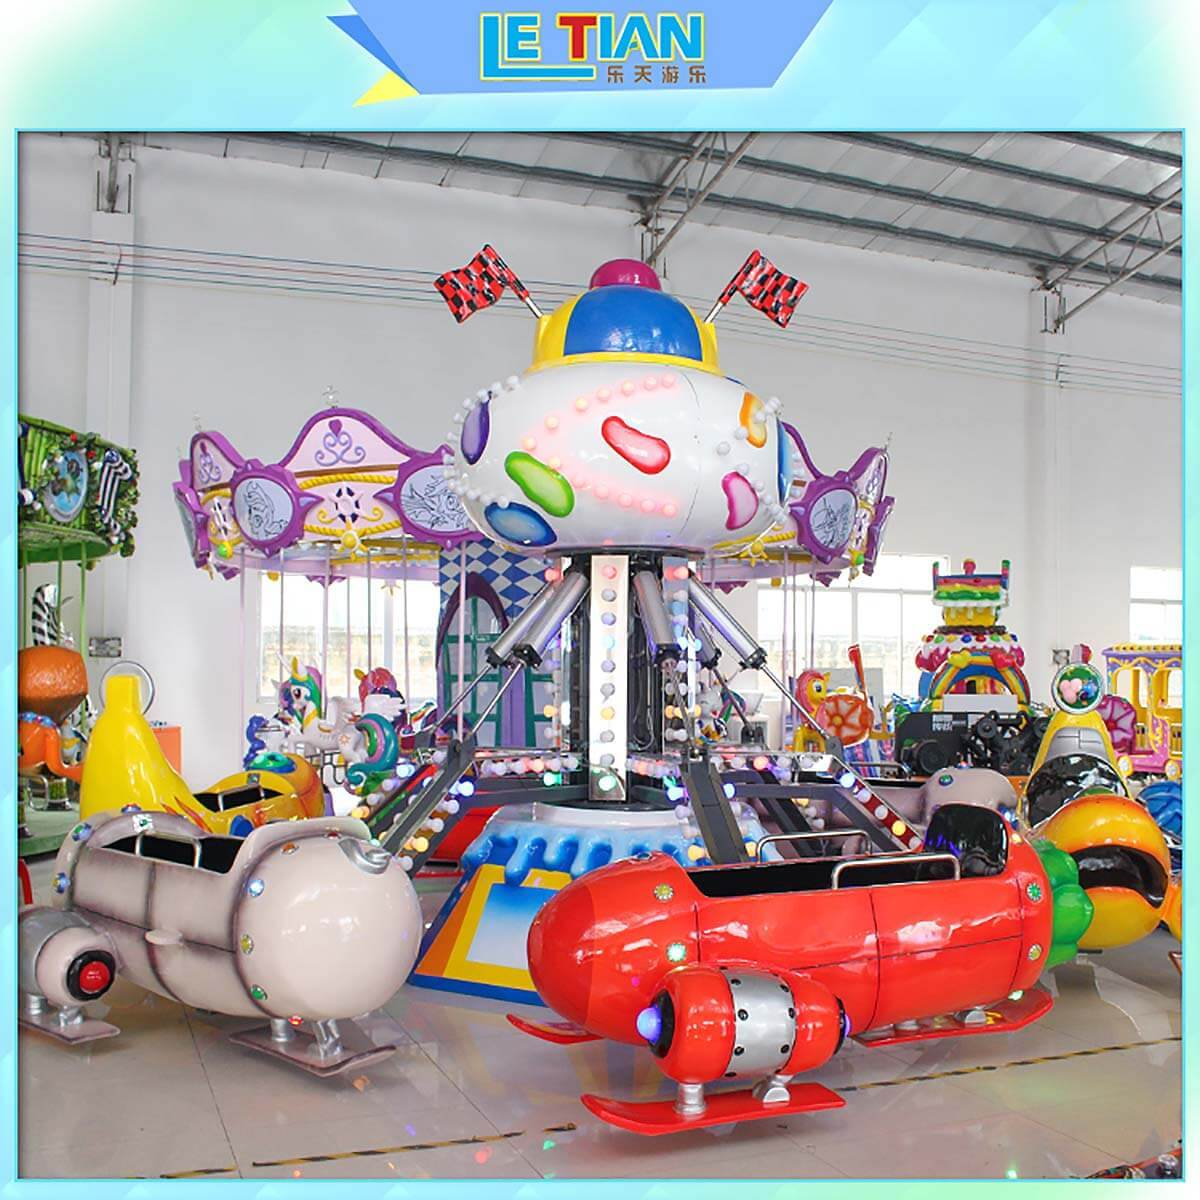 LETIAN amusing amusement equipment manufacturer park